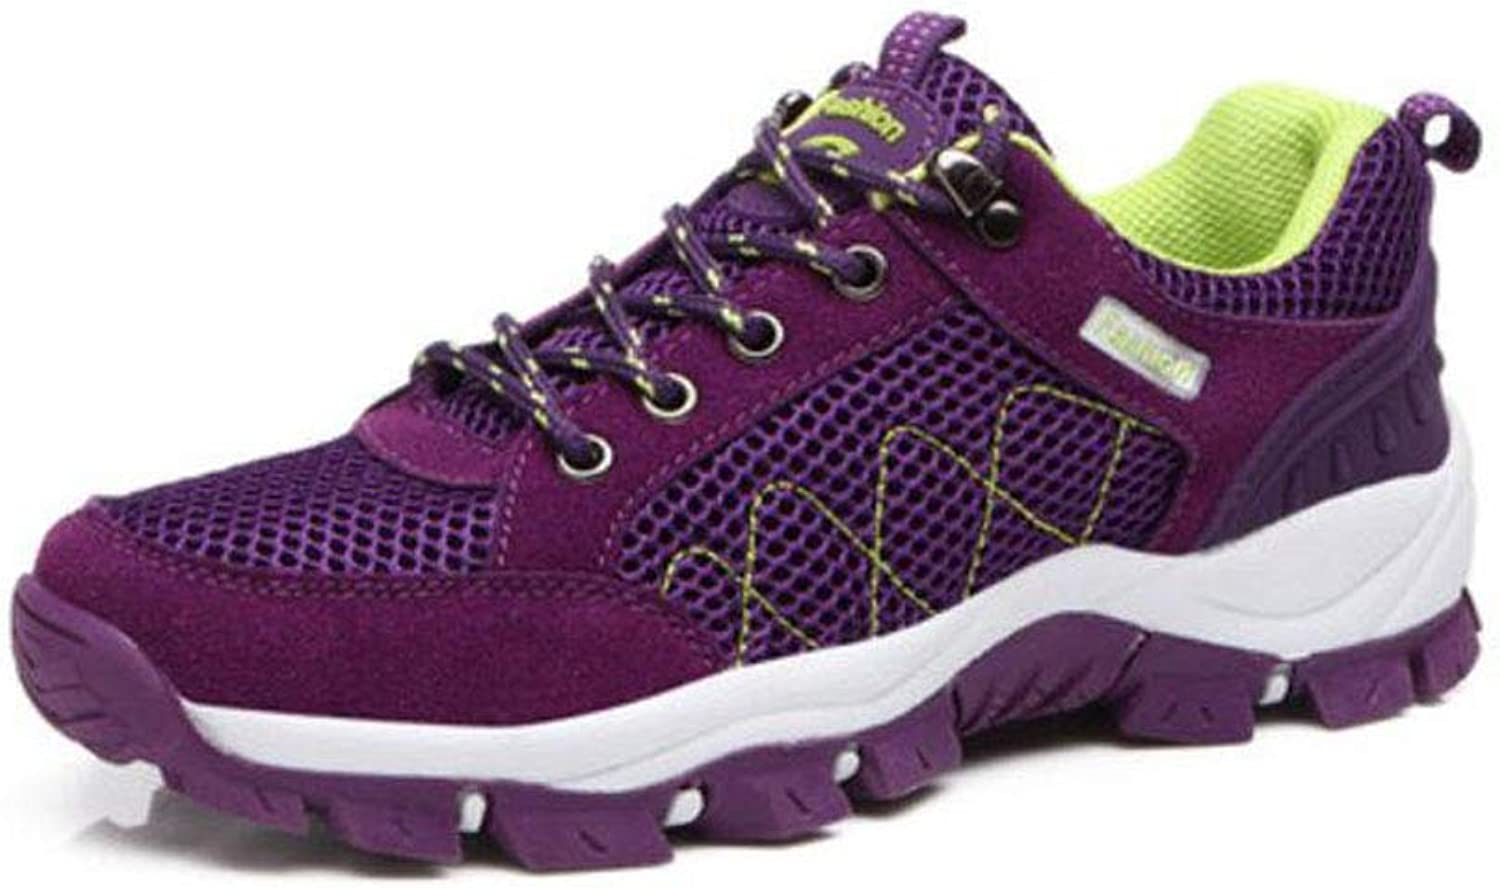 FH Hiking shoes Female Outdoor Walking shoes Waterproof Non-Slip Wear-Resistant Travel shoes Sports shoes